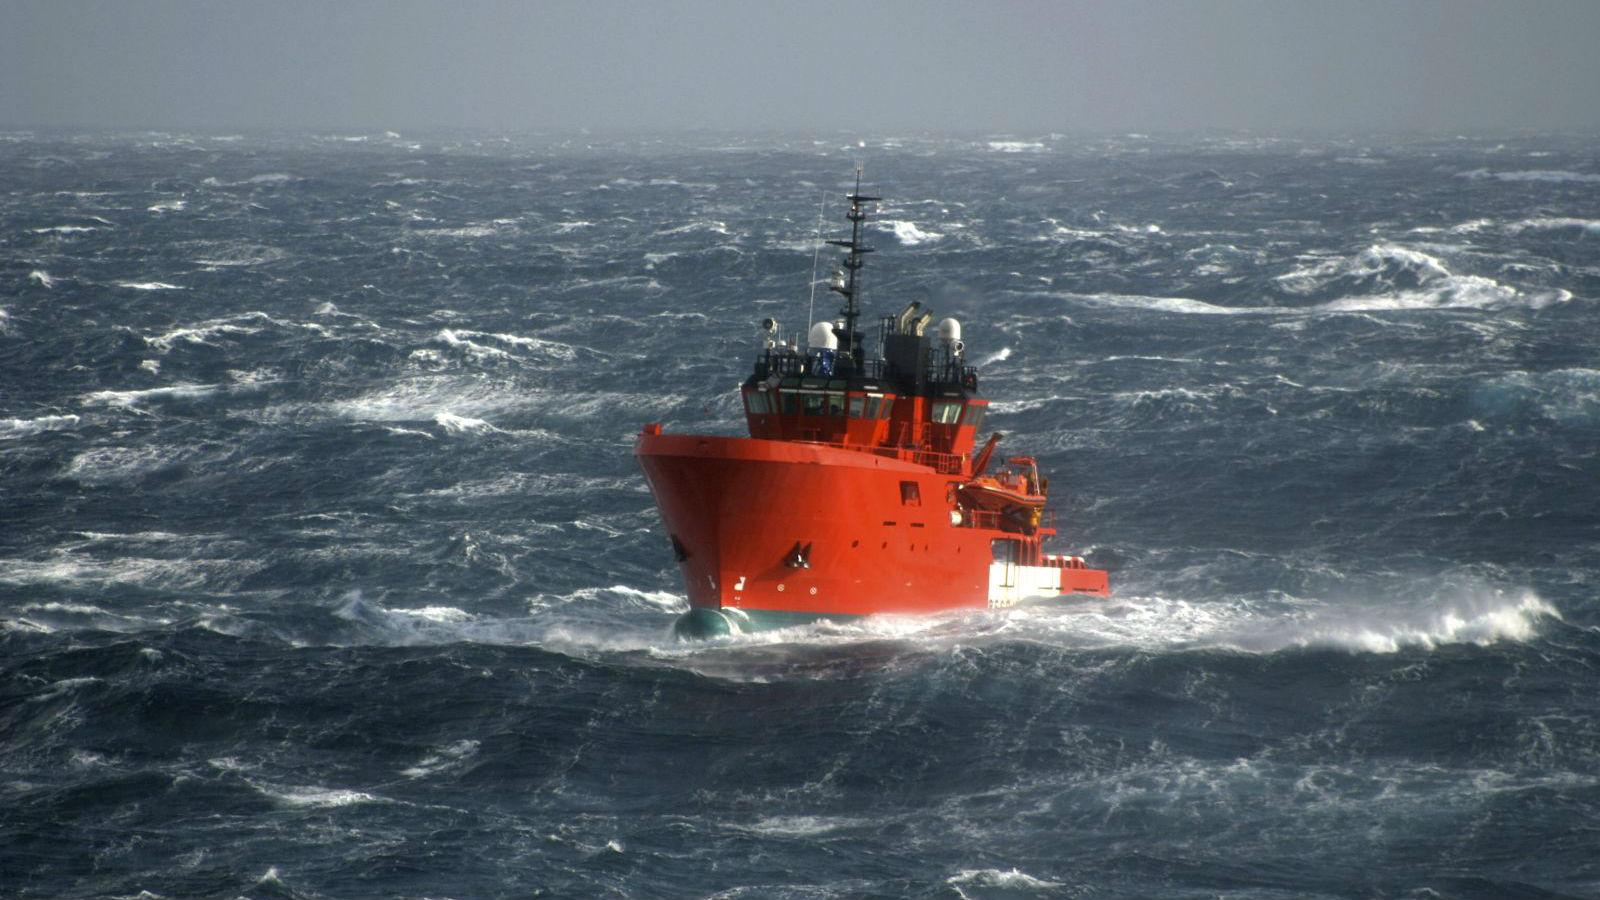 Safety Alert Issued For Dynamic Positioning